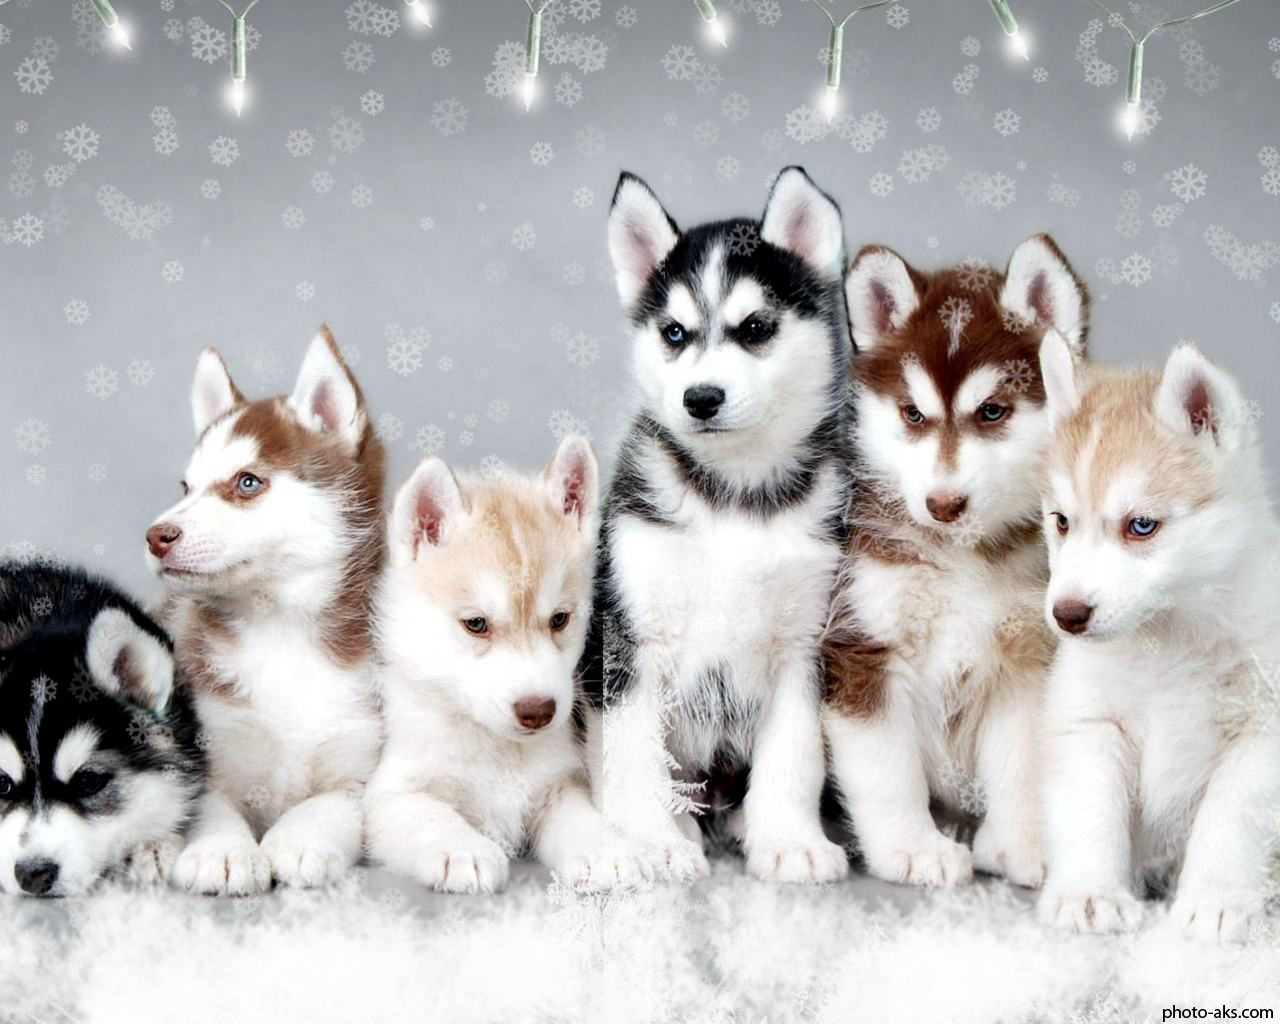 http://pic.photo-aks.com/photo/animals/dogs/large/Snow-Dogs-Cute-Huskies.jpg